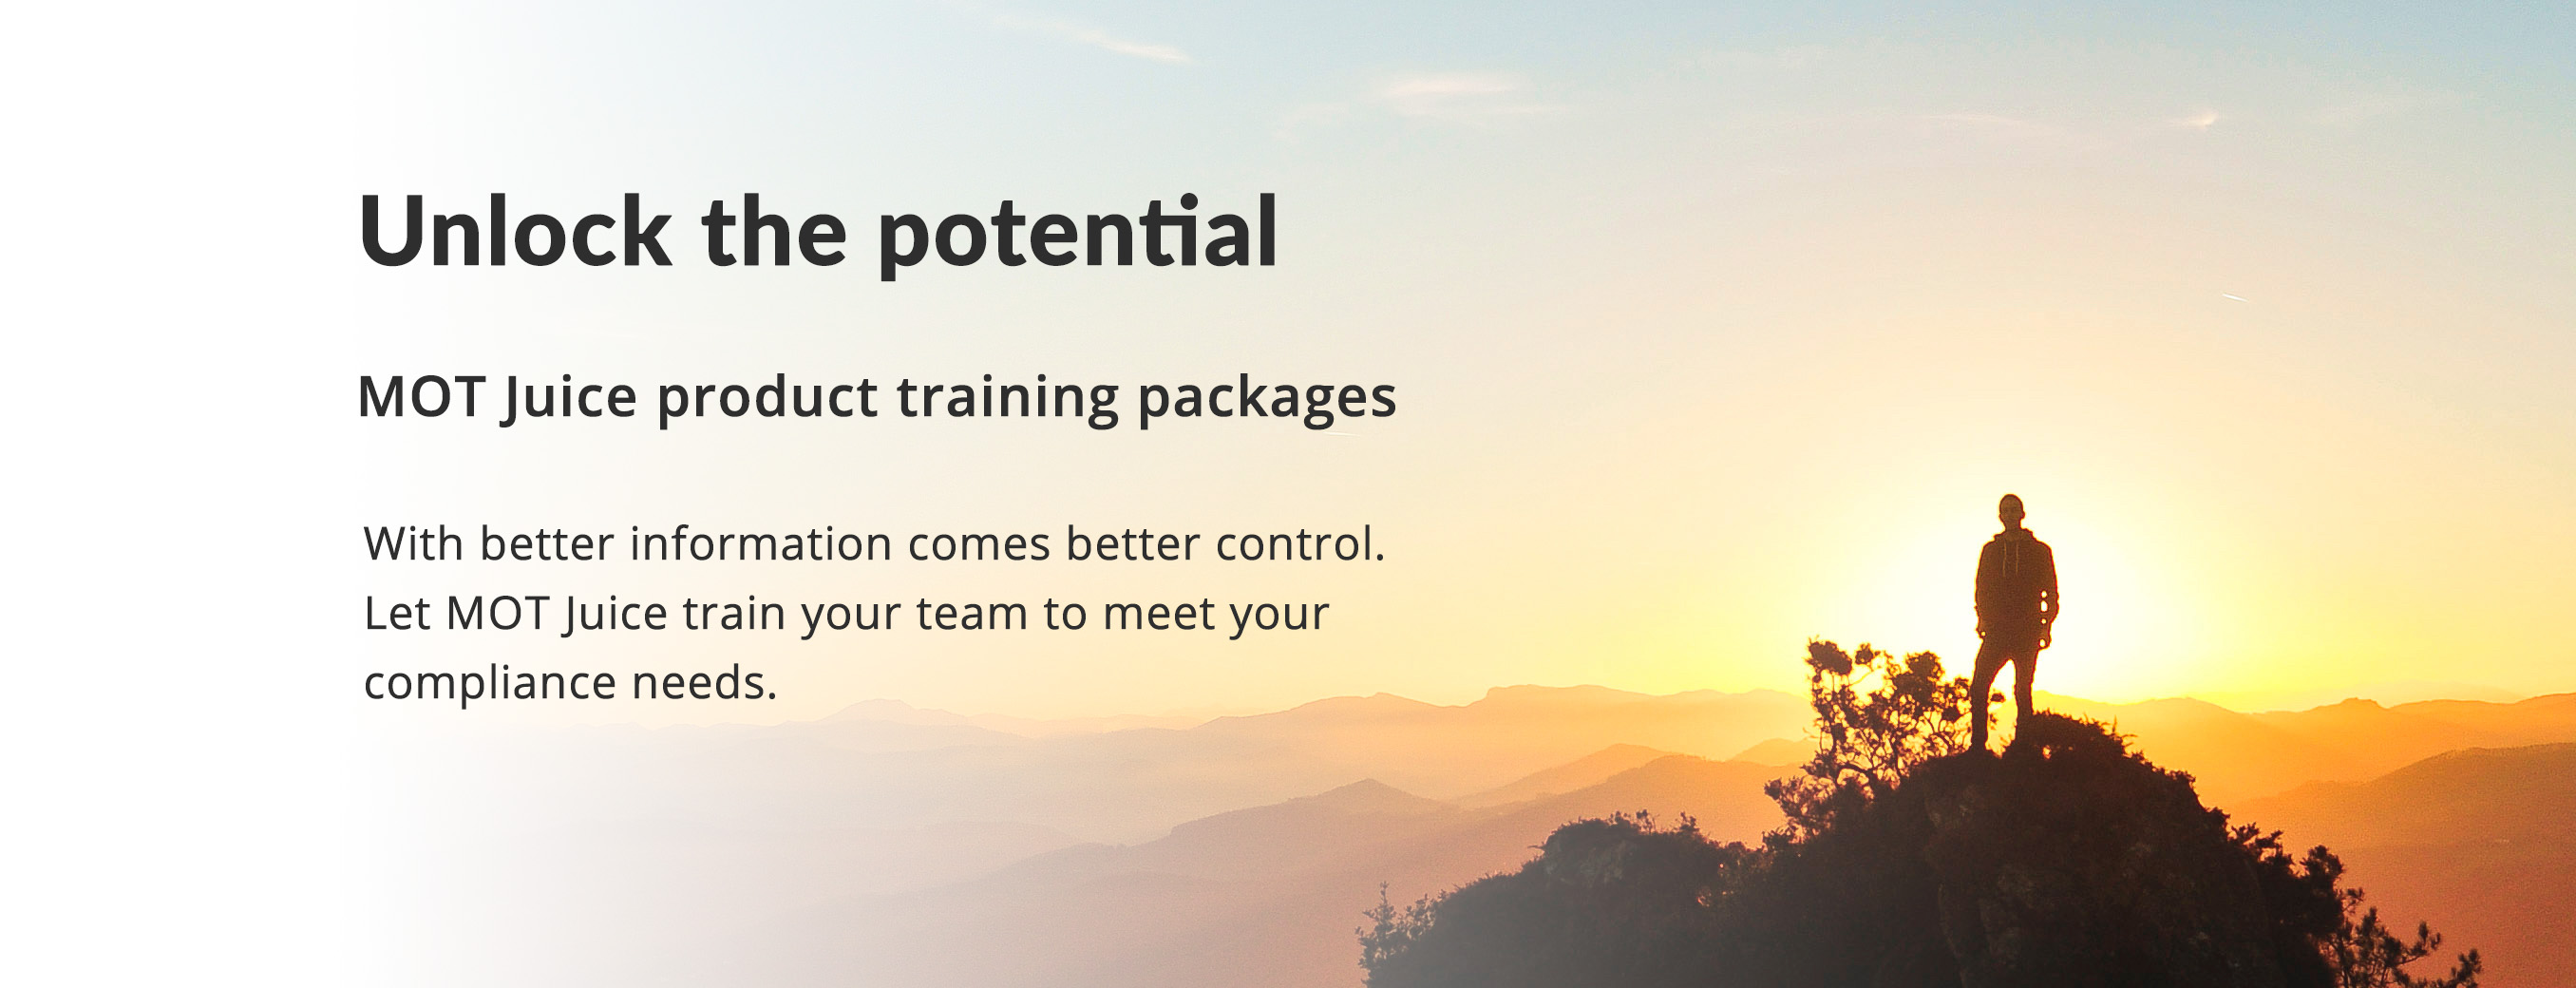 tailor-made training packages for your staff designed to get you up and running as quickly as possible